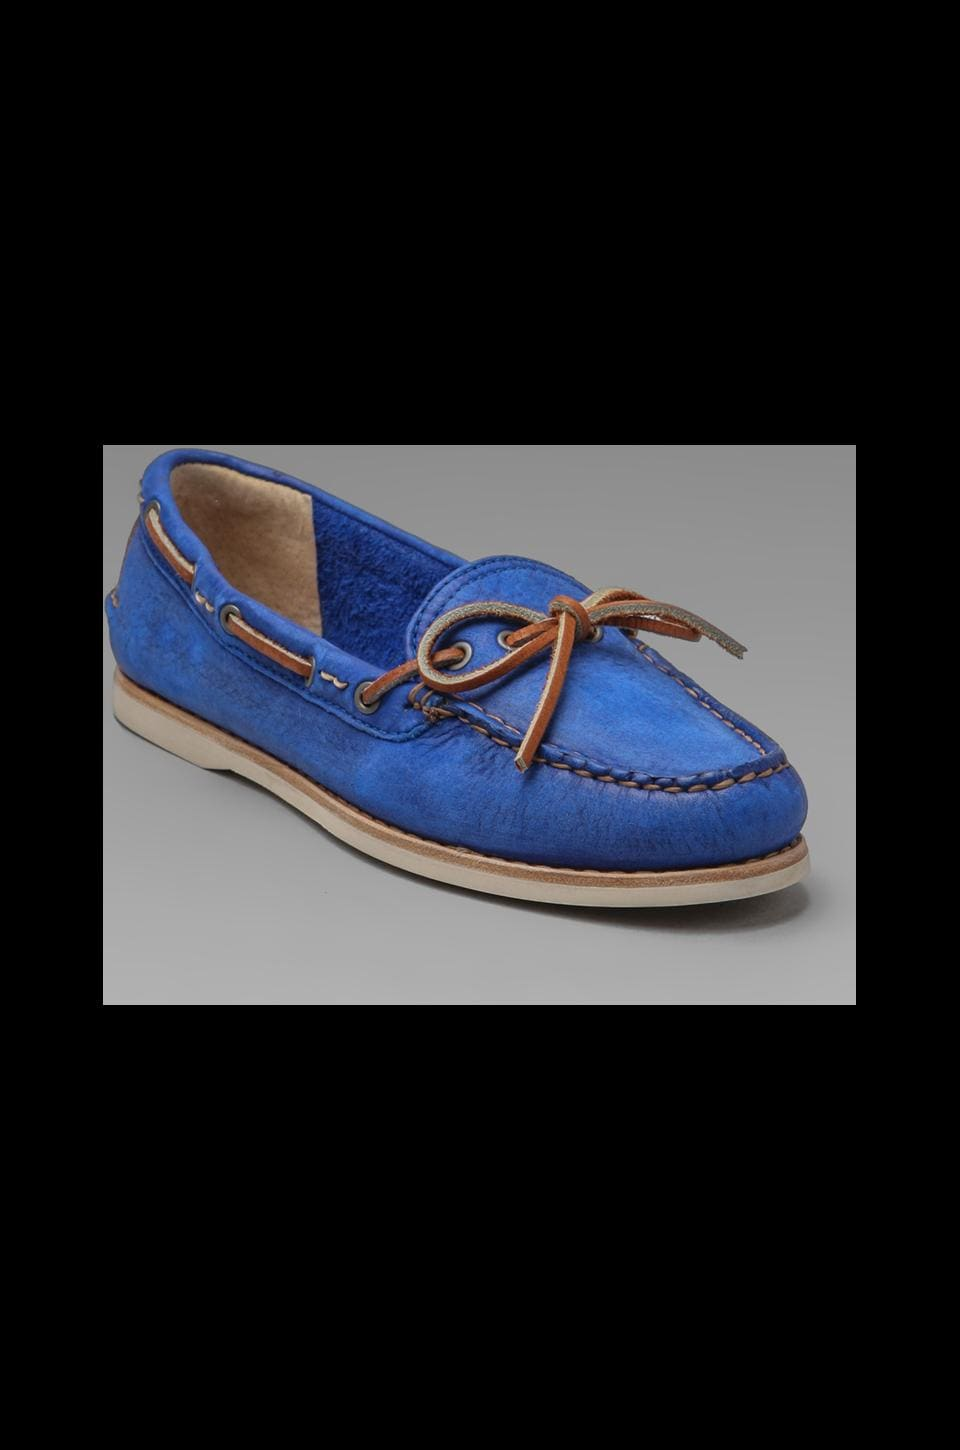 Frye Quincy Tie Boat Shoe in Blue